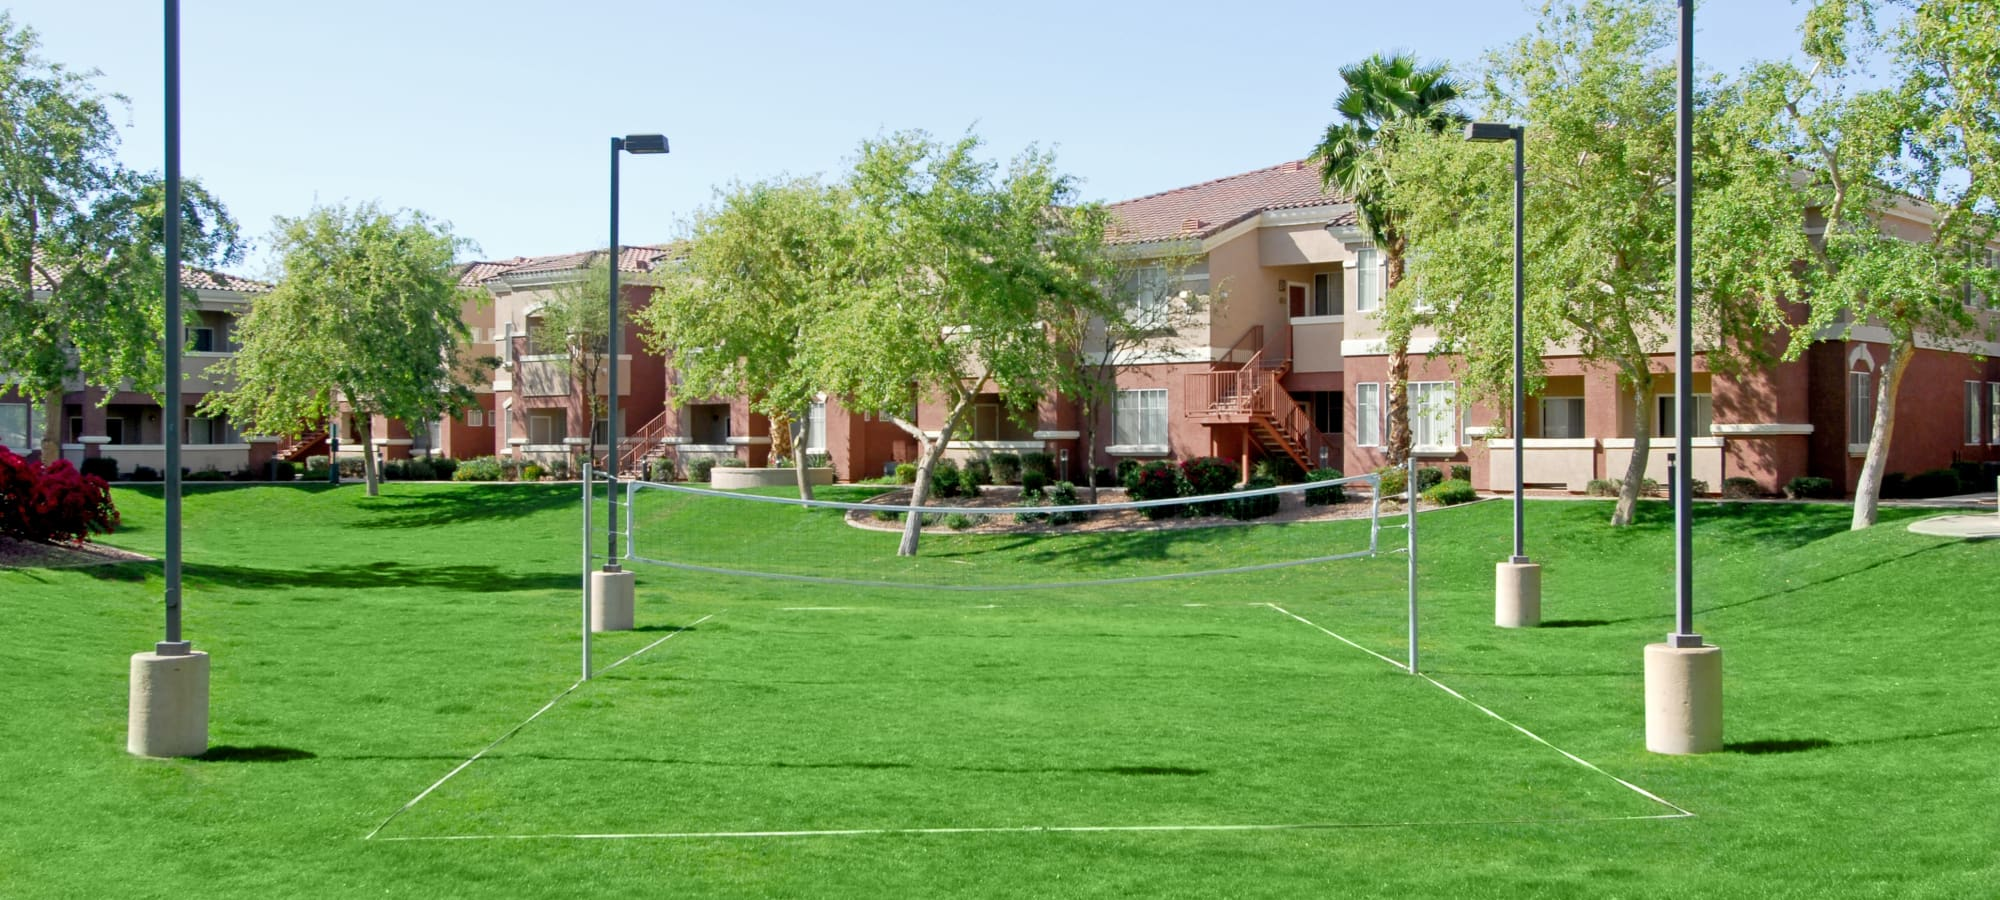 Badminton court in the lawn at Remington Ranch in Litchfield Park, Arizona